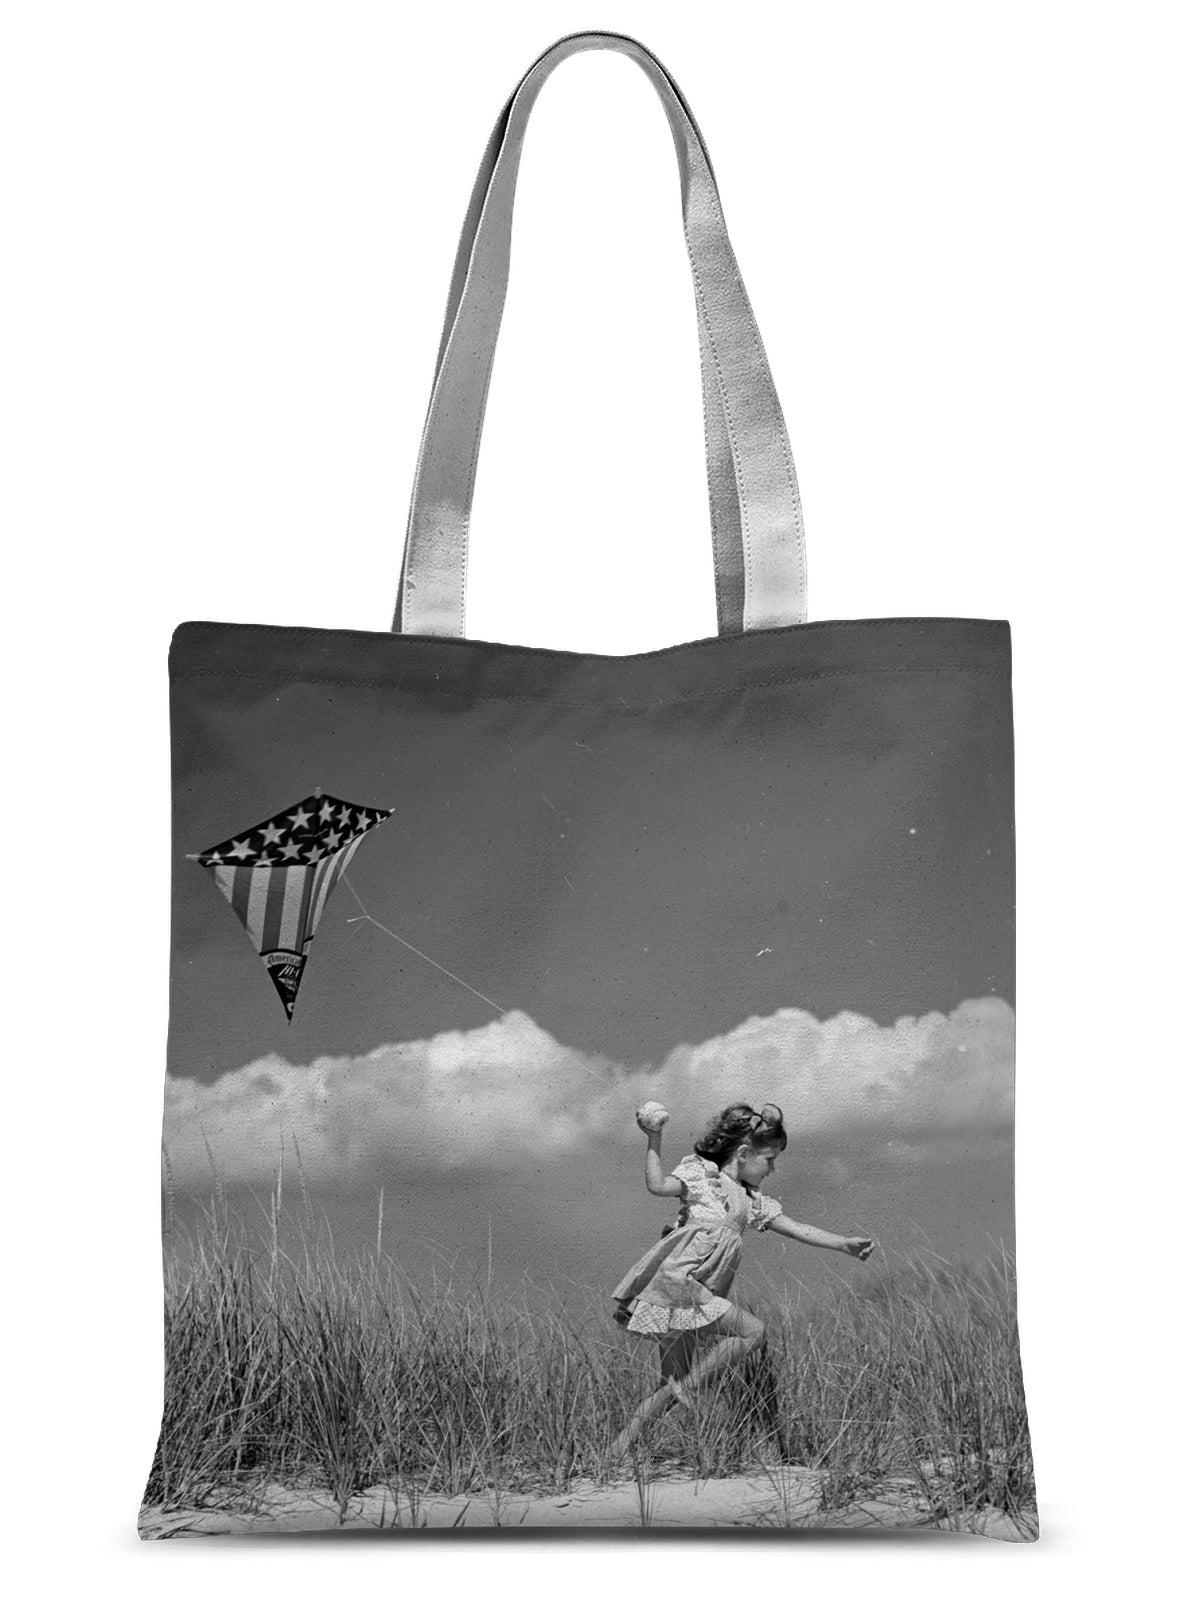 Girl Running With A Kite, Long Island, 1944 - Sublimation Tote Bag